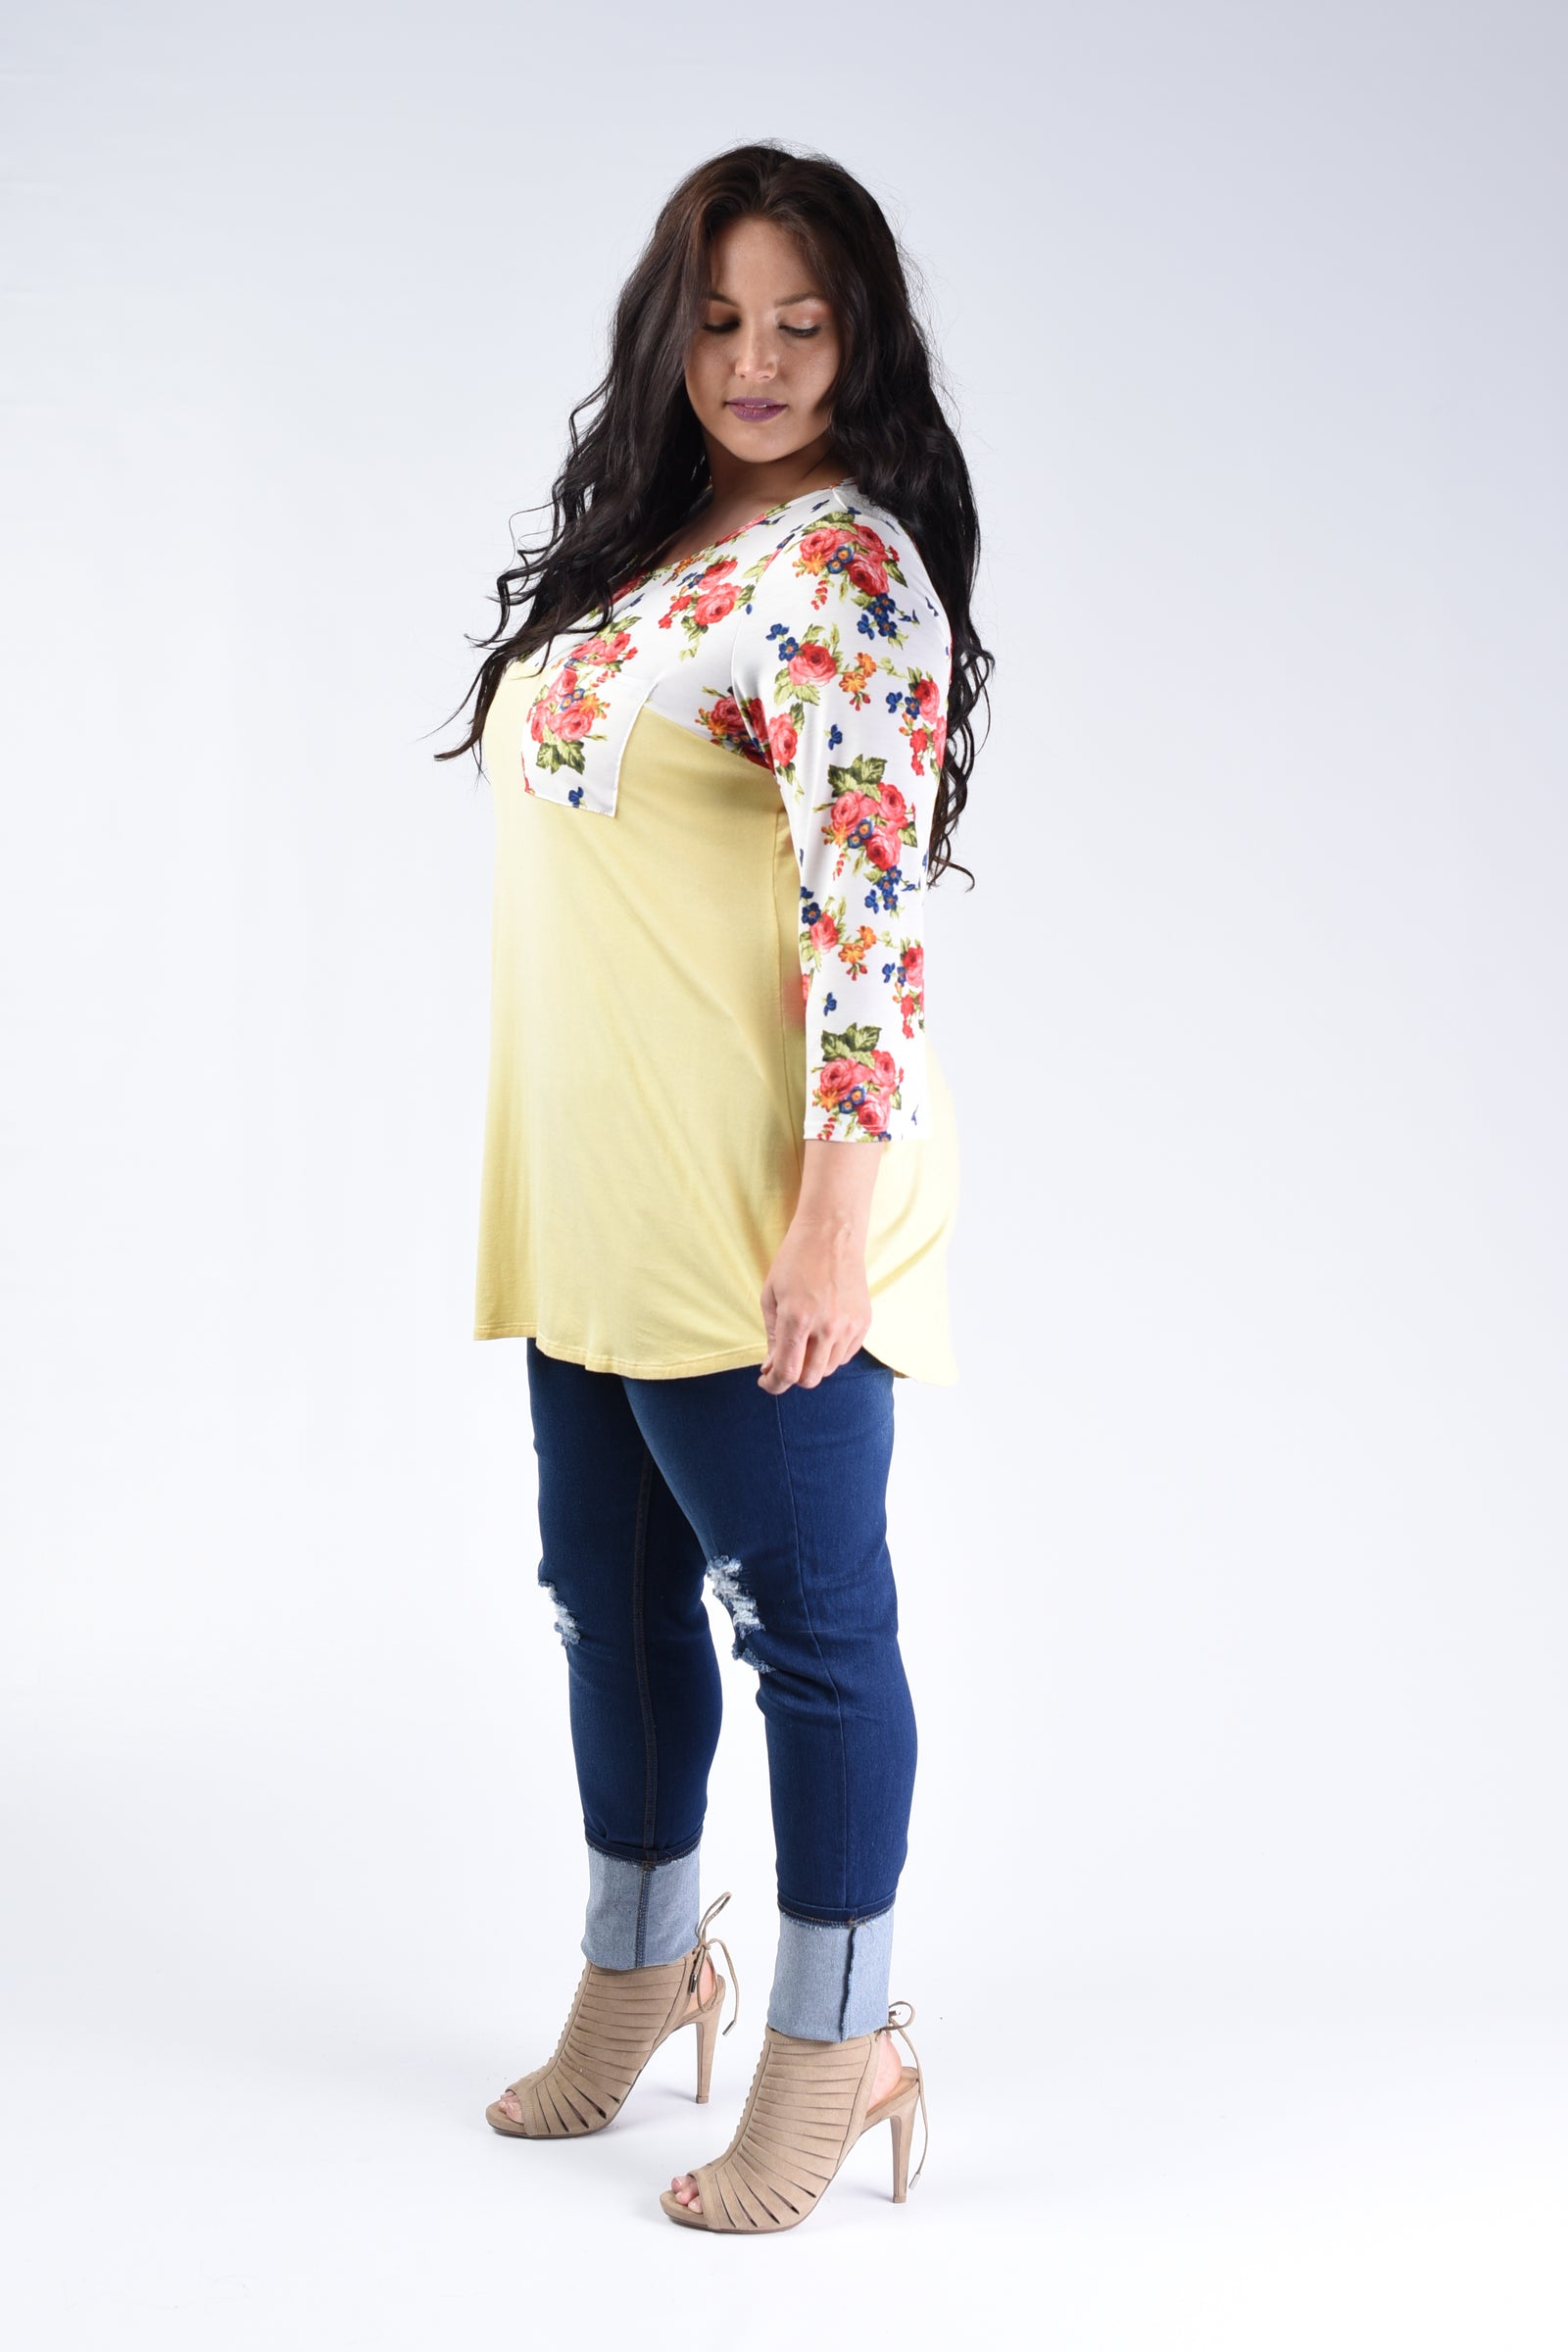 Yellow & Floral Contrast Top - www.mycurvystore.com - Curvy Boutique - Plus Size